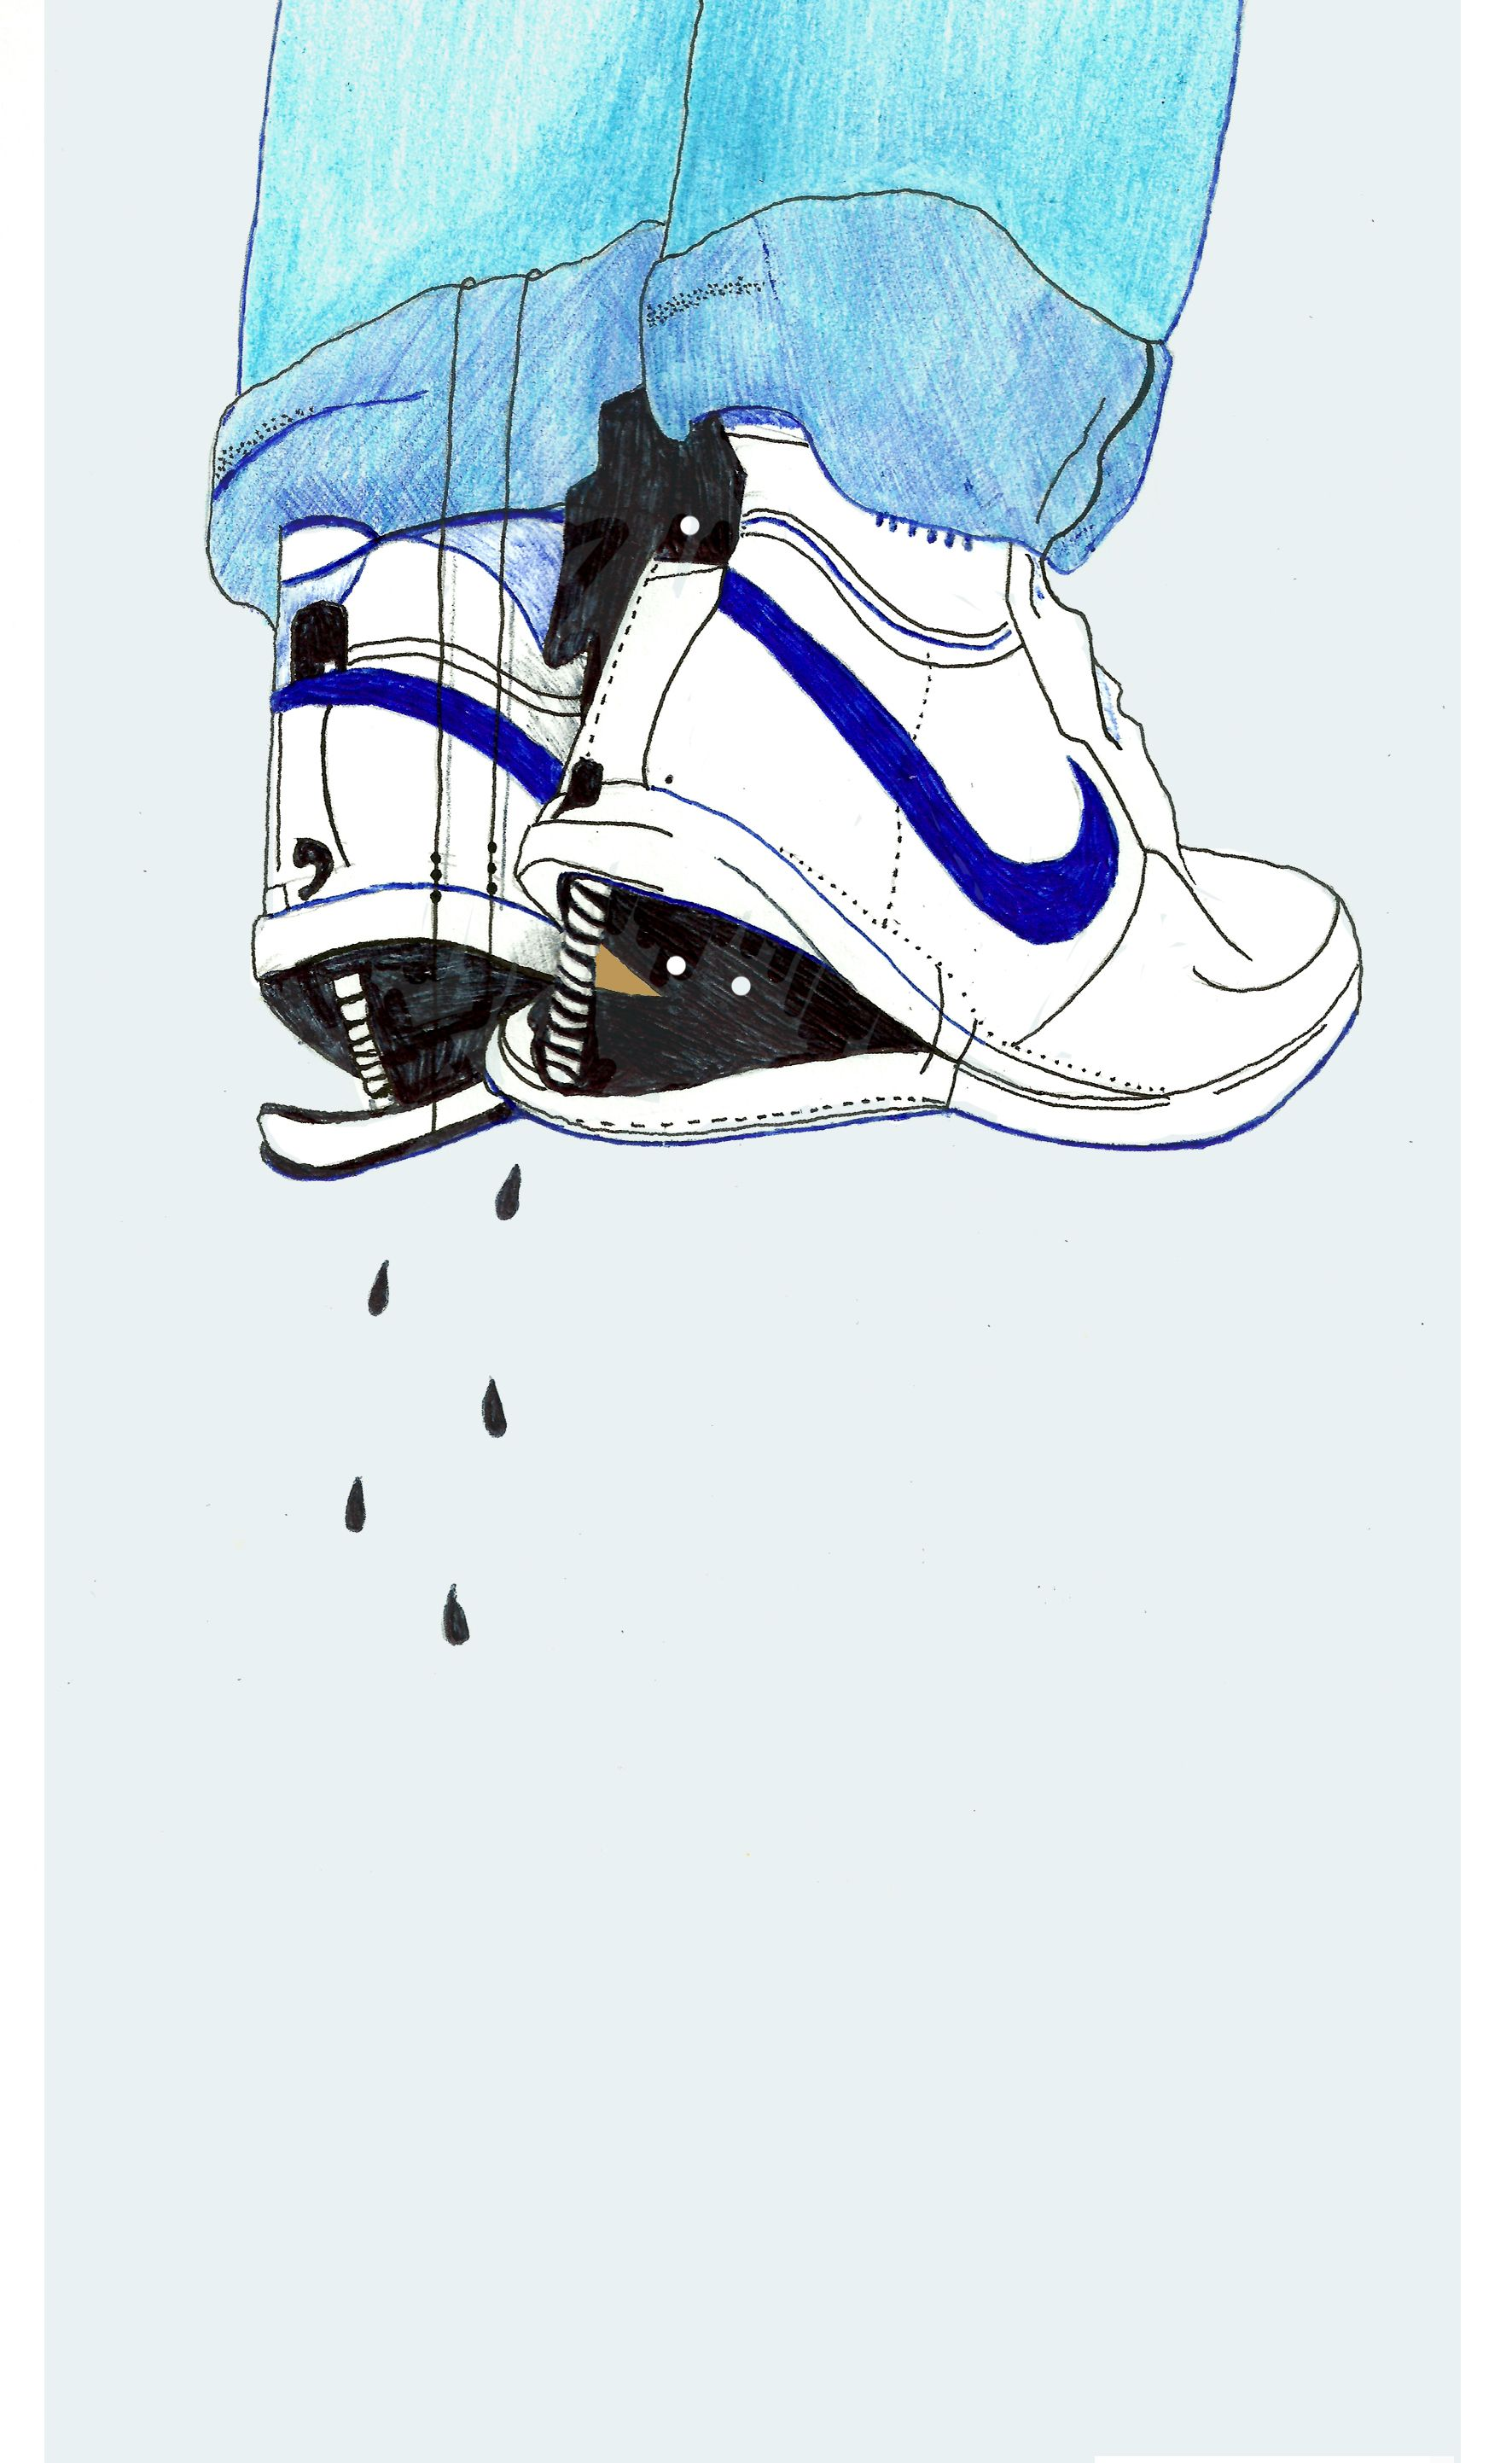 Slick Shoes Illustration From The Movie The Goonies